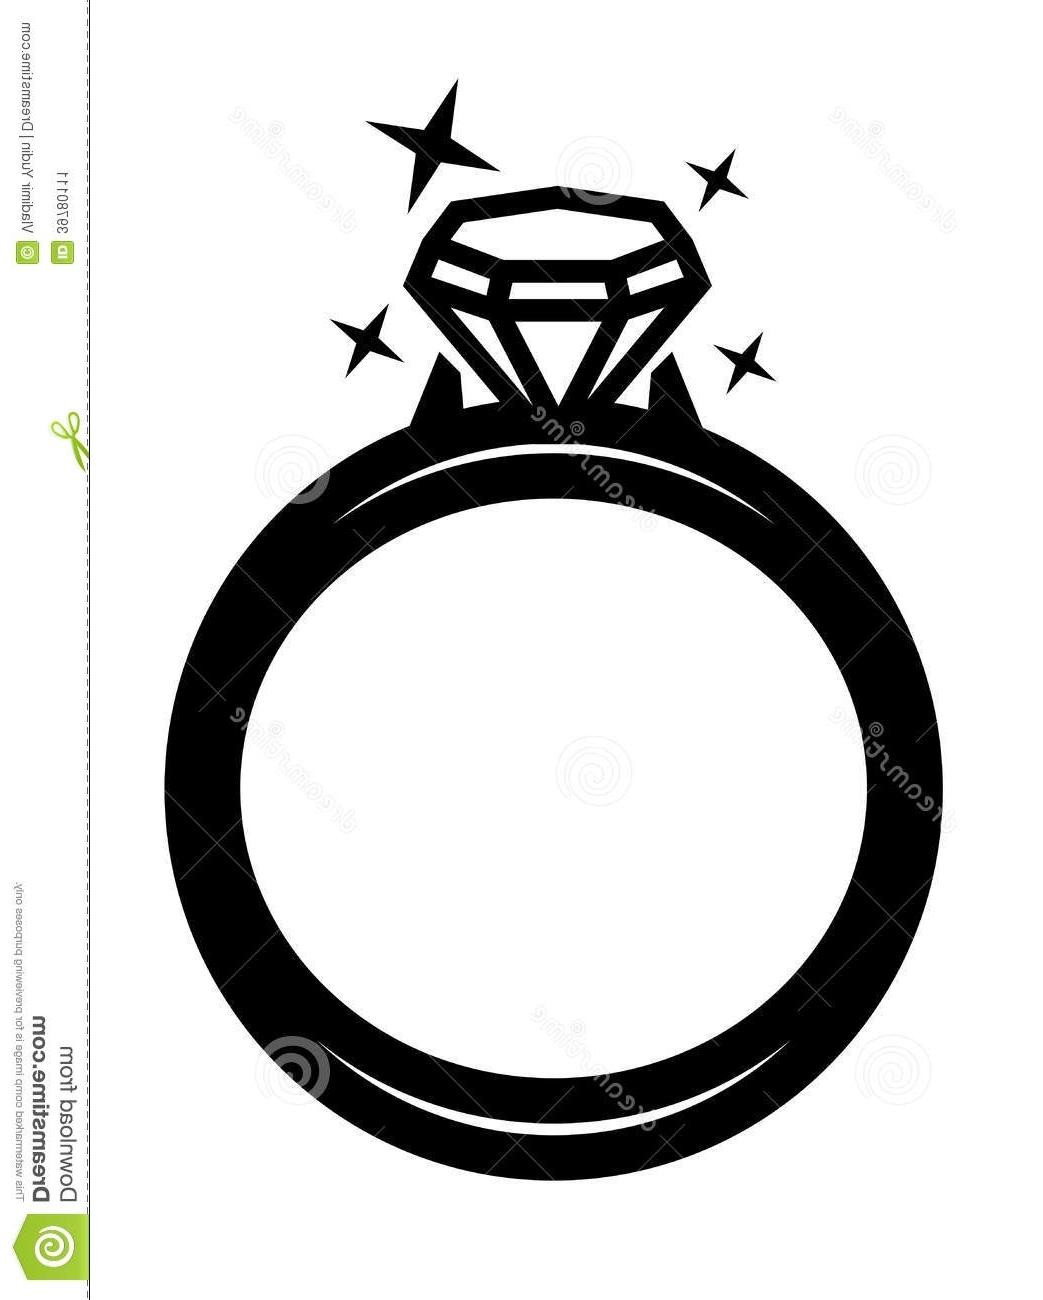 displaying and com gallery full clipart of cross ring view unique attachment rings wedding inspirational symbol cliparting clipartfest